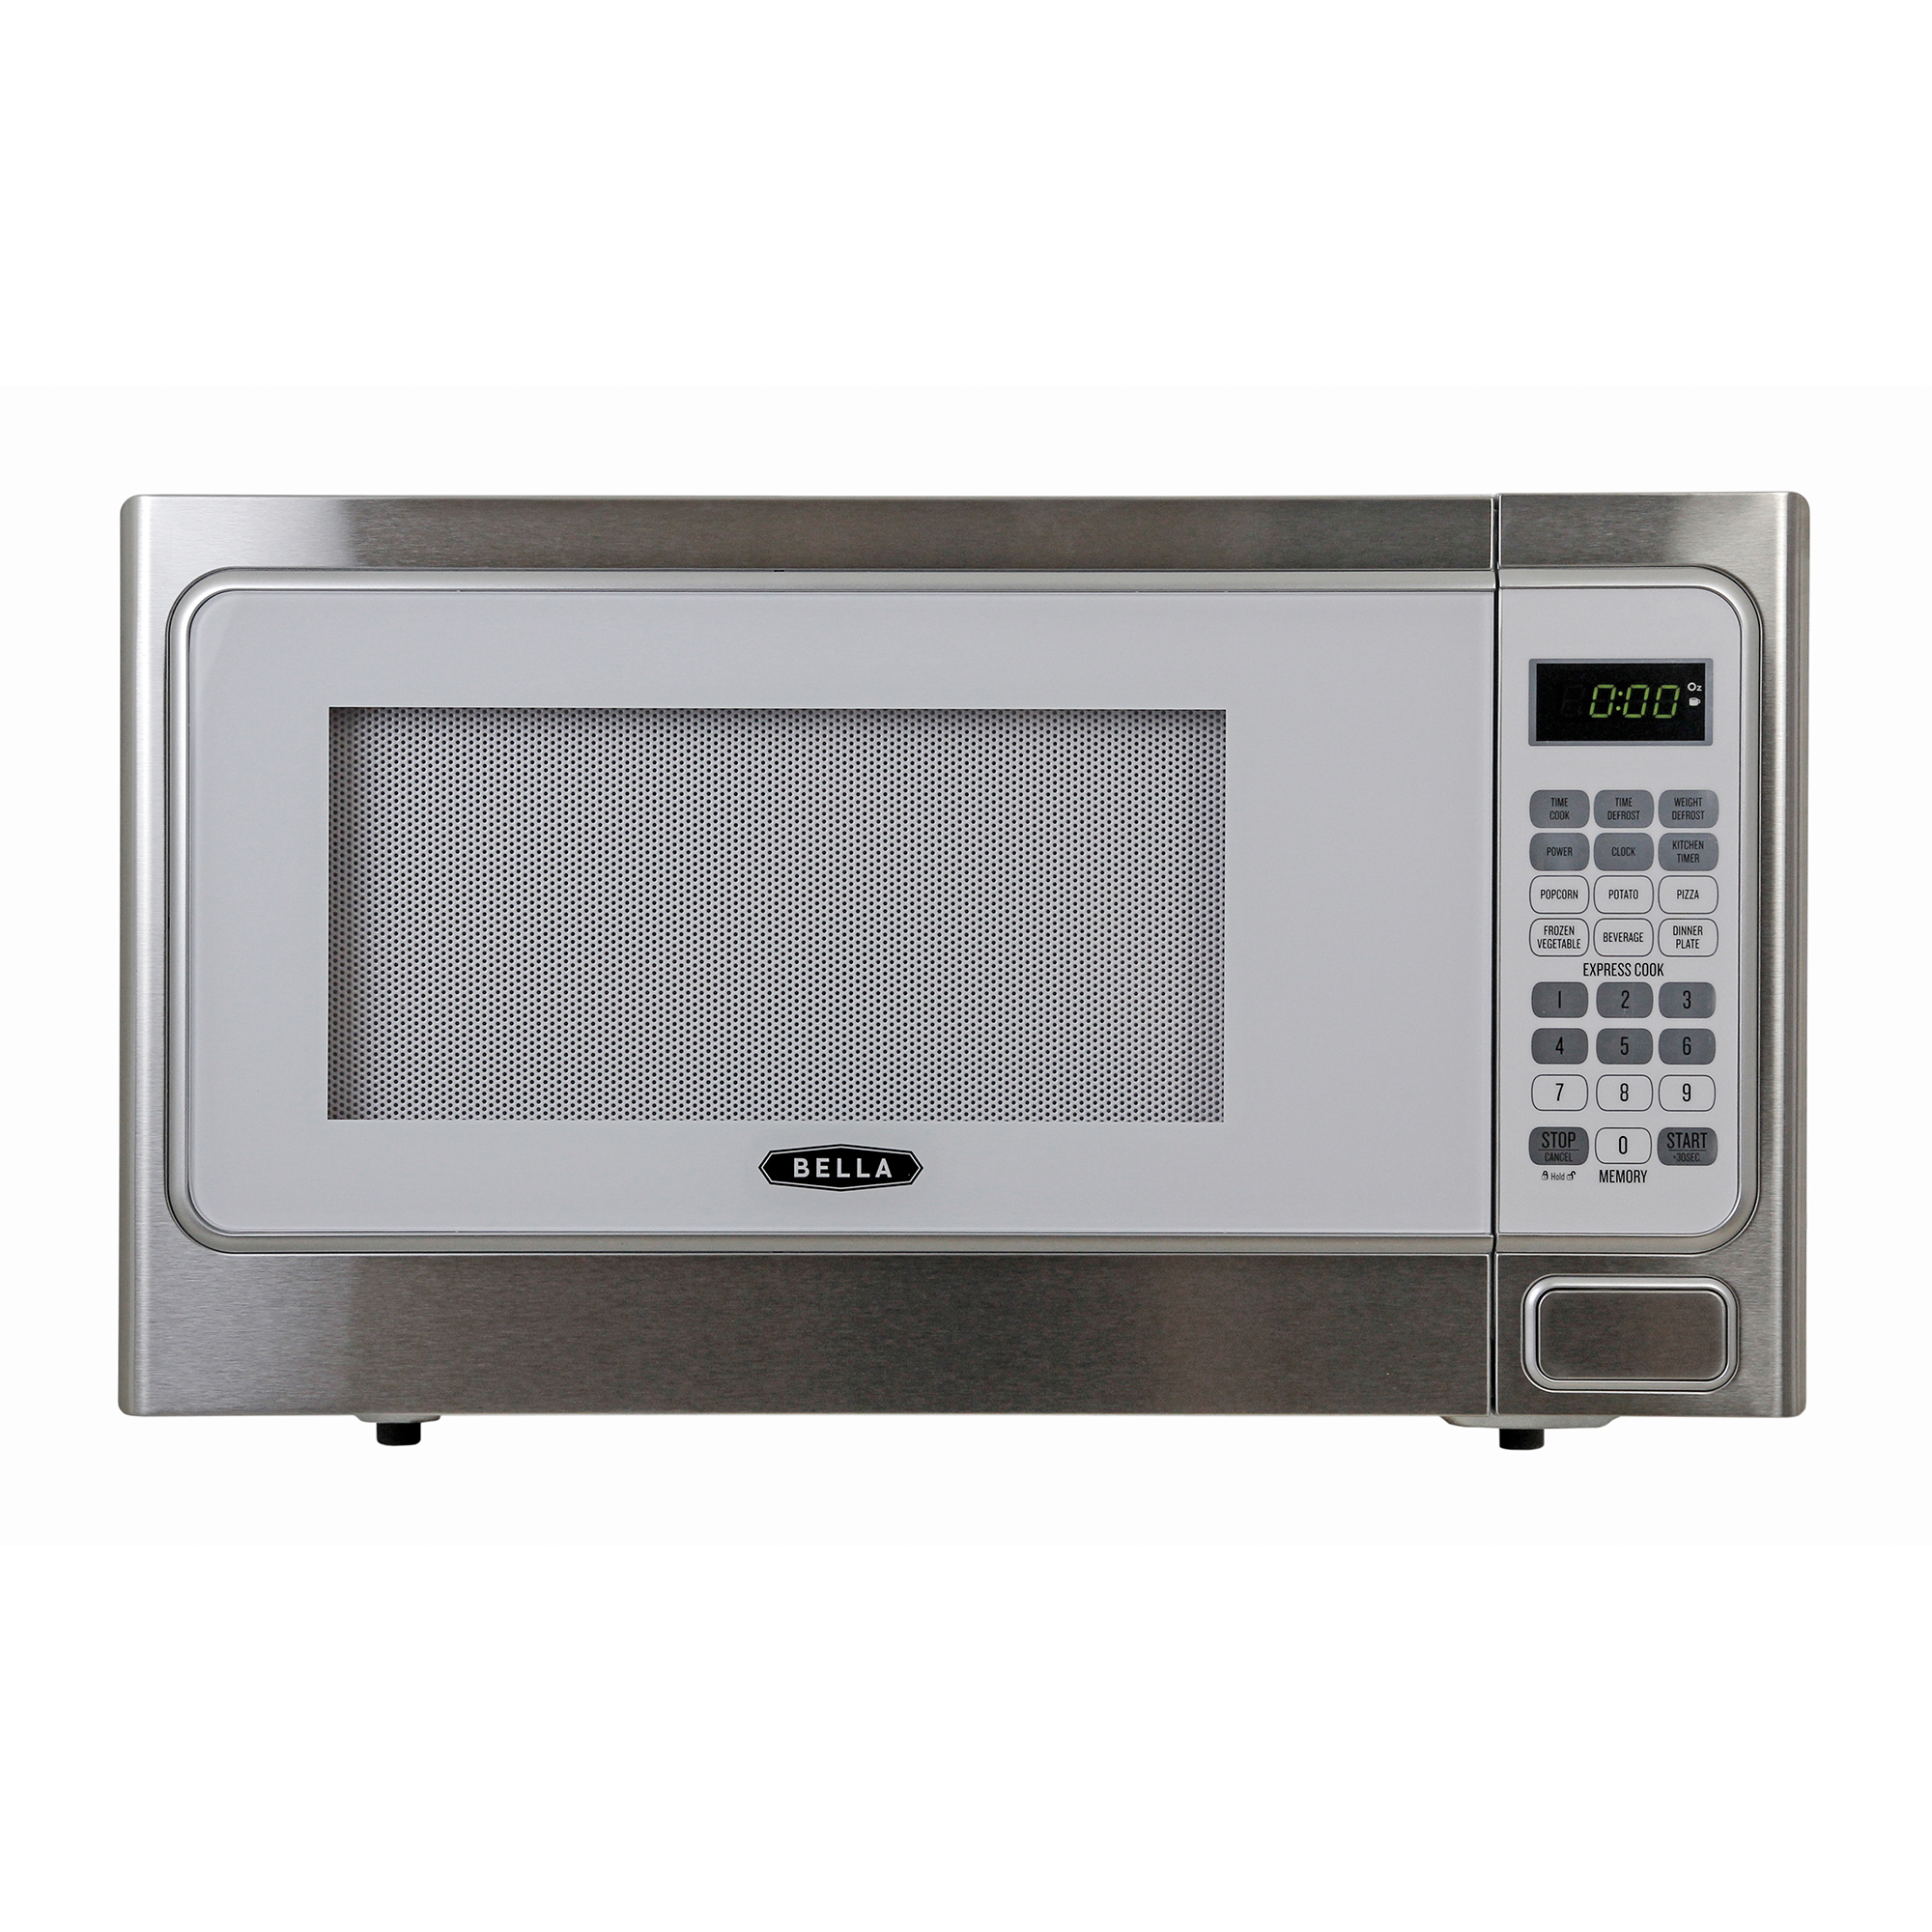 Bella BMO11ABTWHC 1.1 Cubic Foot 1000 Watt Microwave Oven, White with Stainless Steel by Edge Consumer Brands